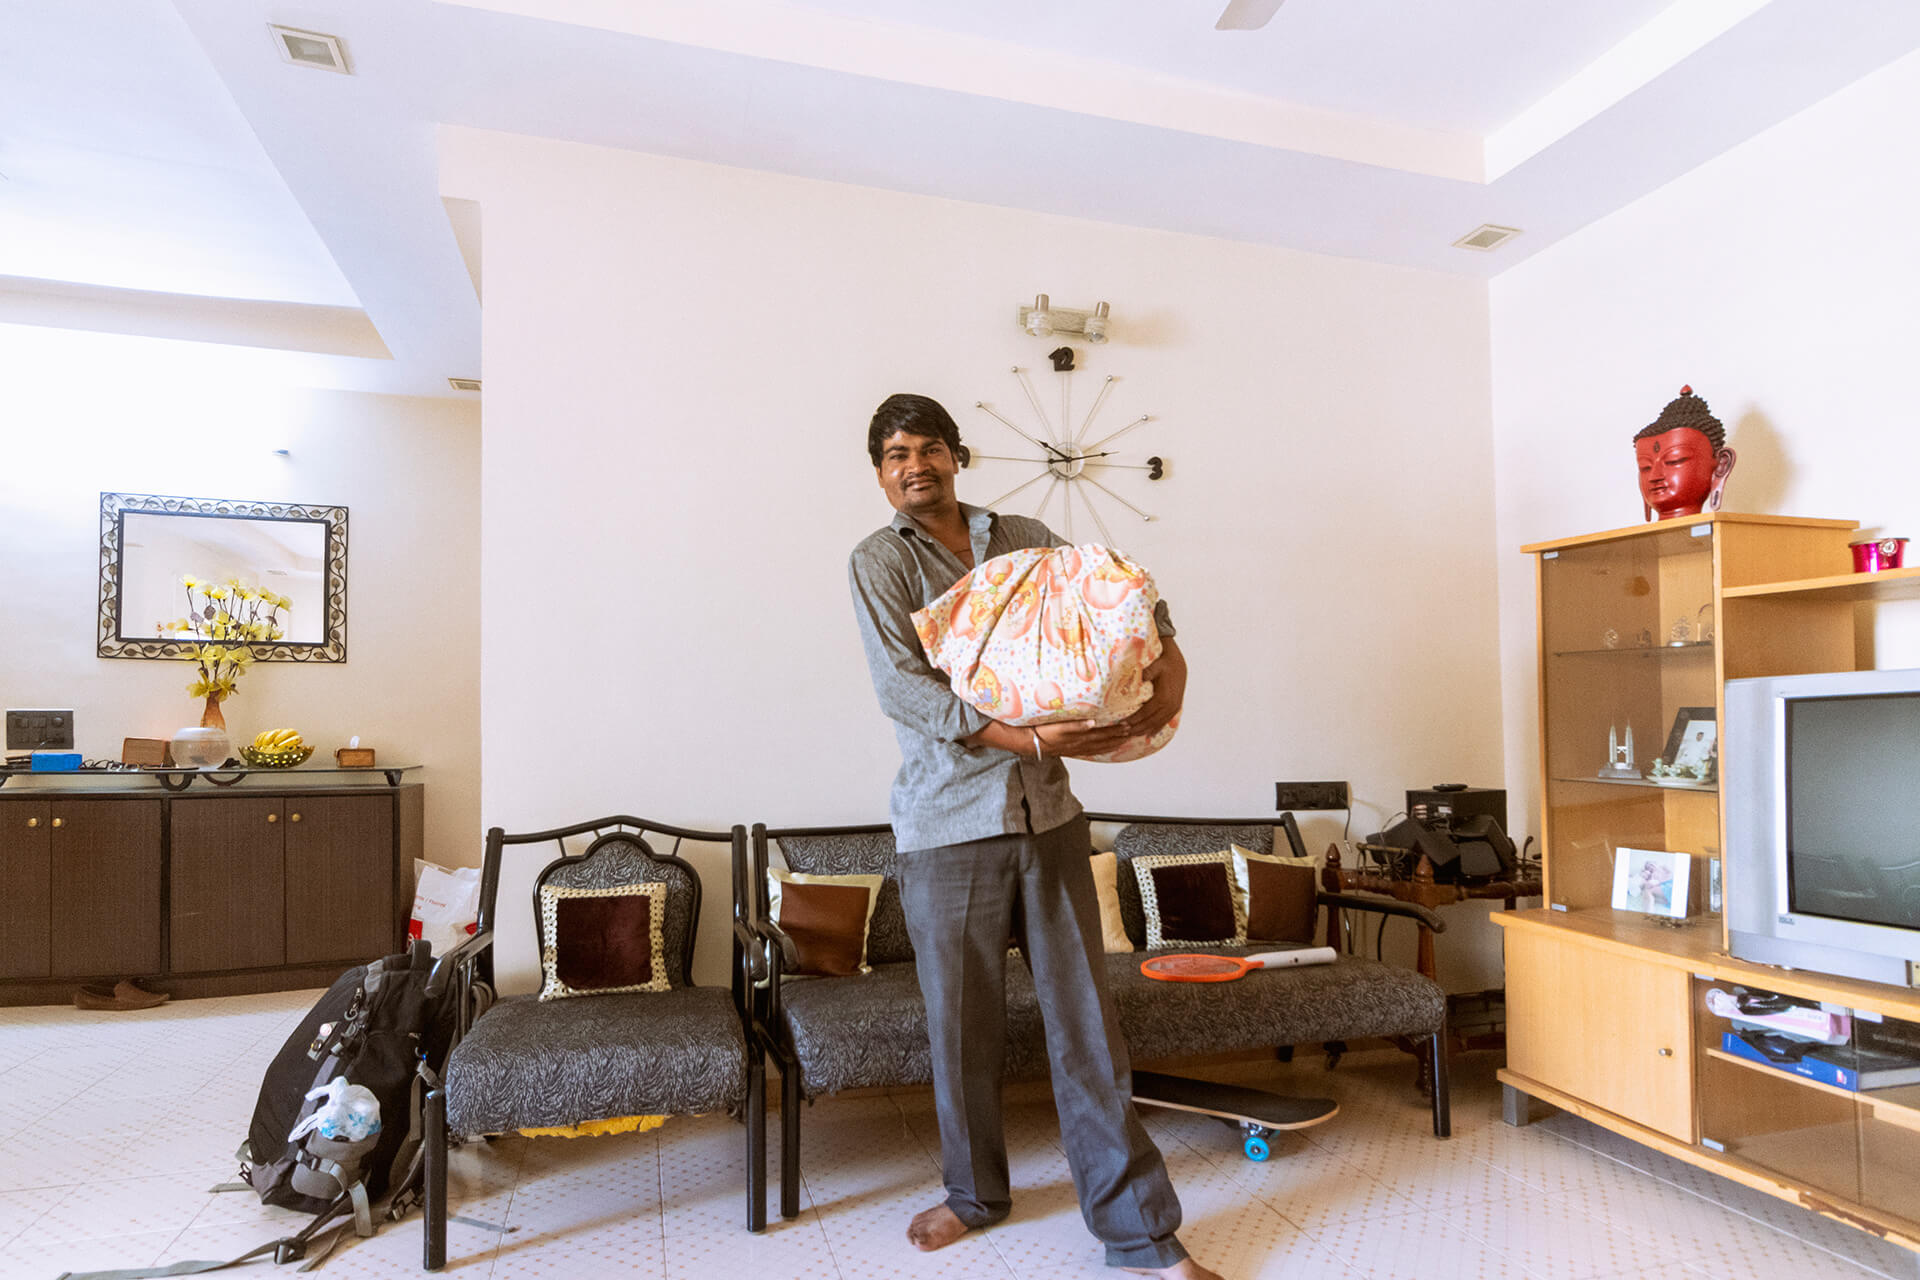 Dhanraj works as a dhobhi (launderer) in high-end apartments in Ahmedabad. Seeing a camera, he requested for a picture of him with the bag of un-ironed clothes he got from the household | Gated communities are destroying public life of Indian cities | STIRworld